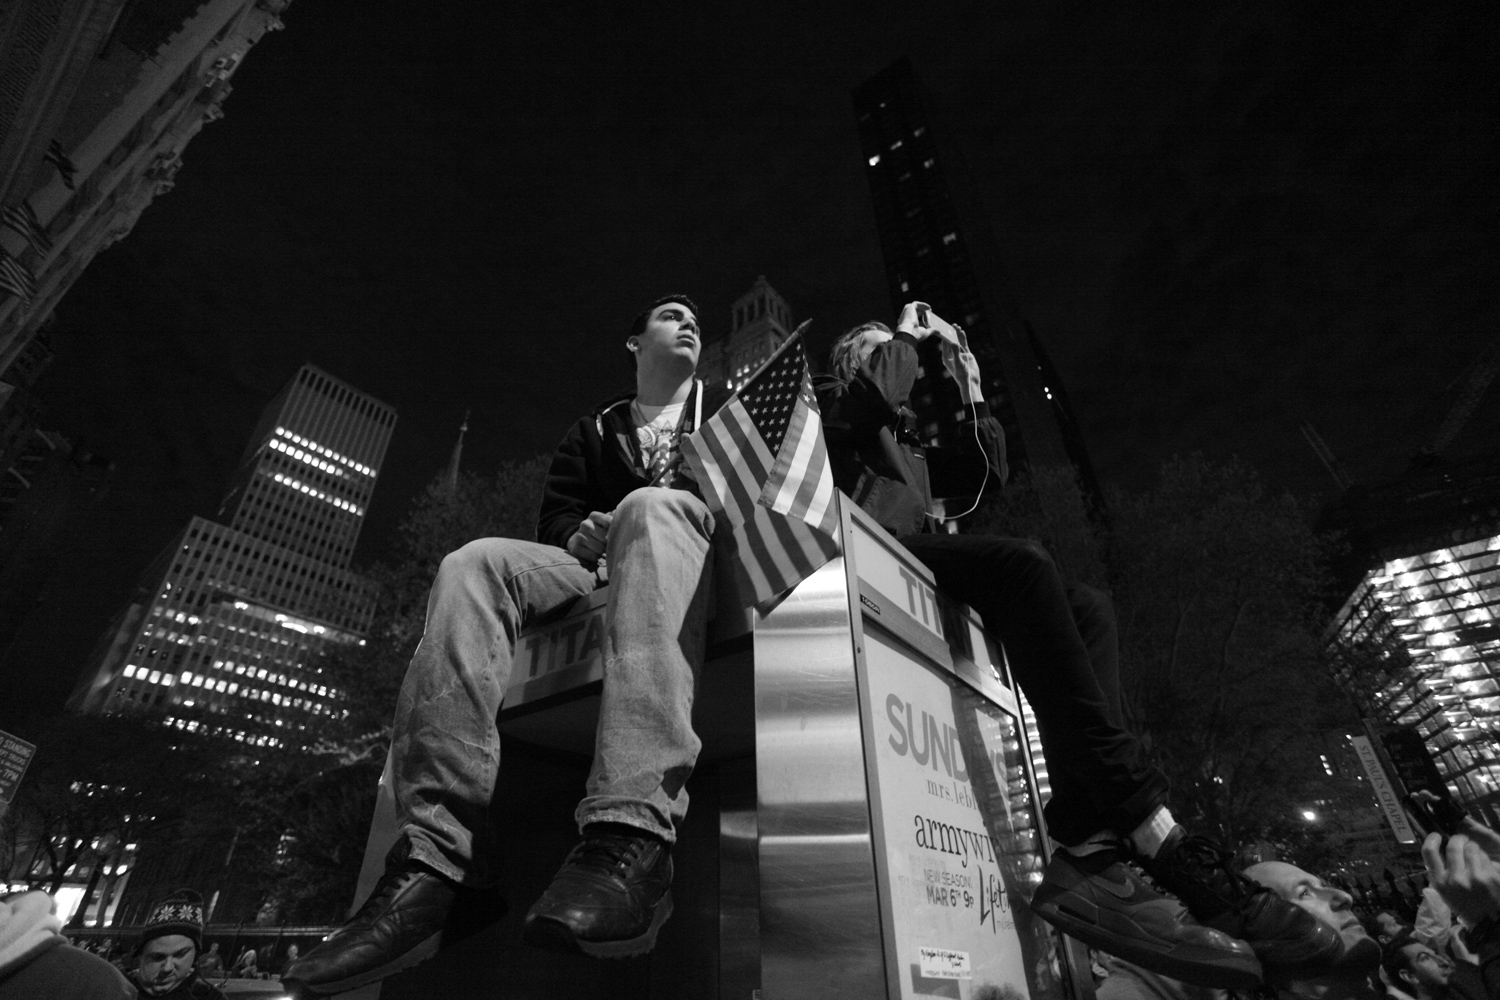 20-year-old Chris Lombari, the son of a firefighter from Staten Island, climbed on top of a phone booth to cheer on the crowd and reflect on the night.